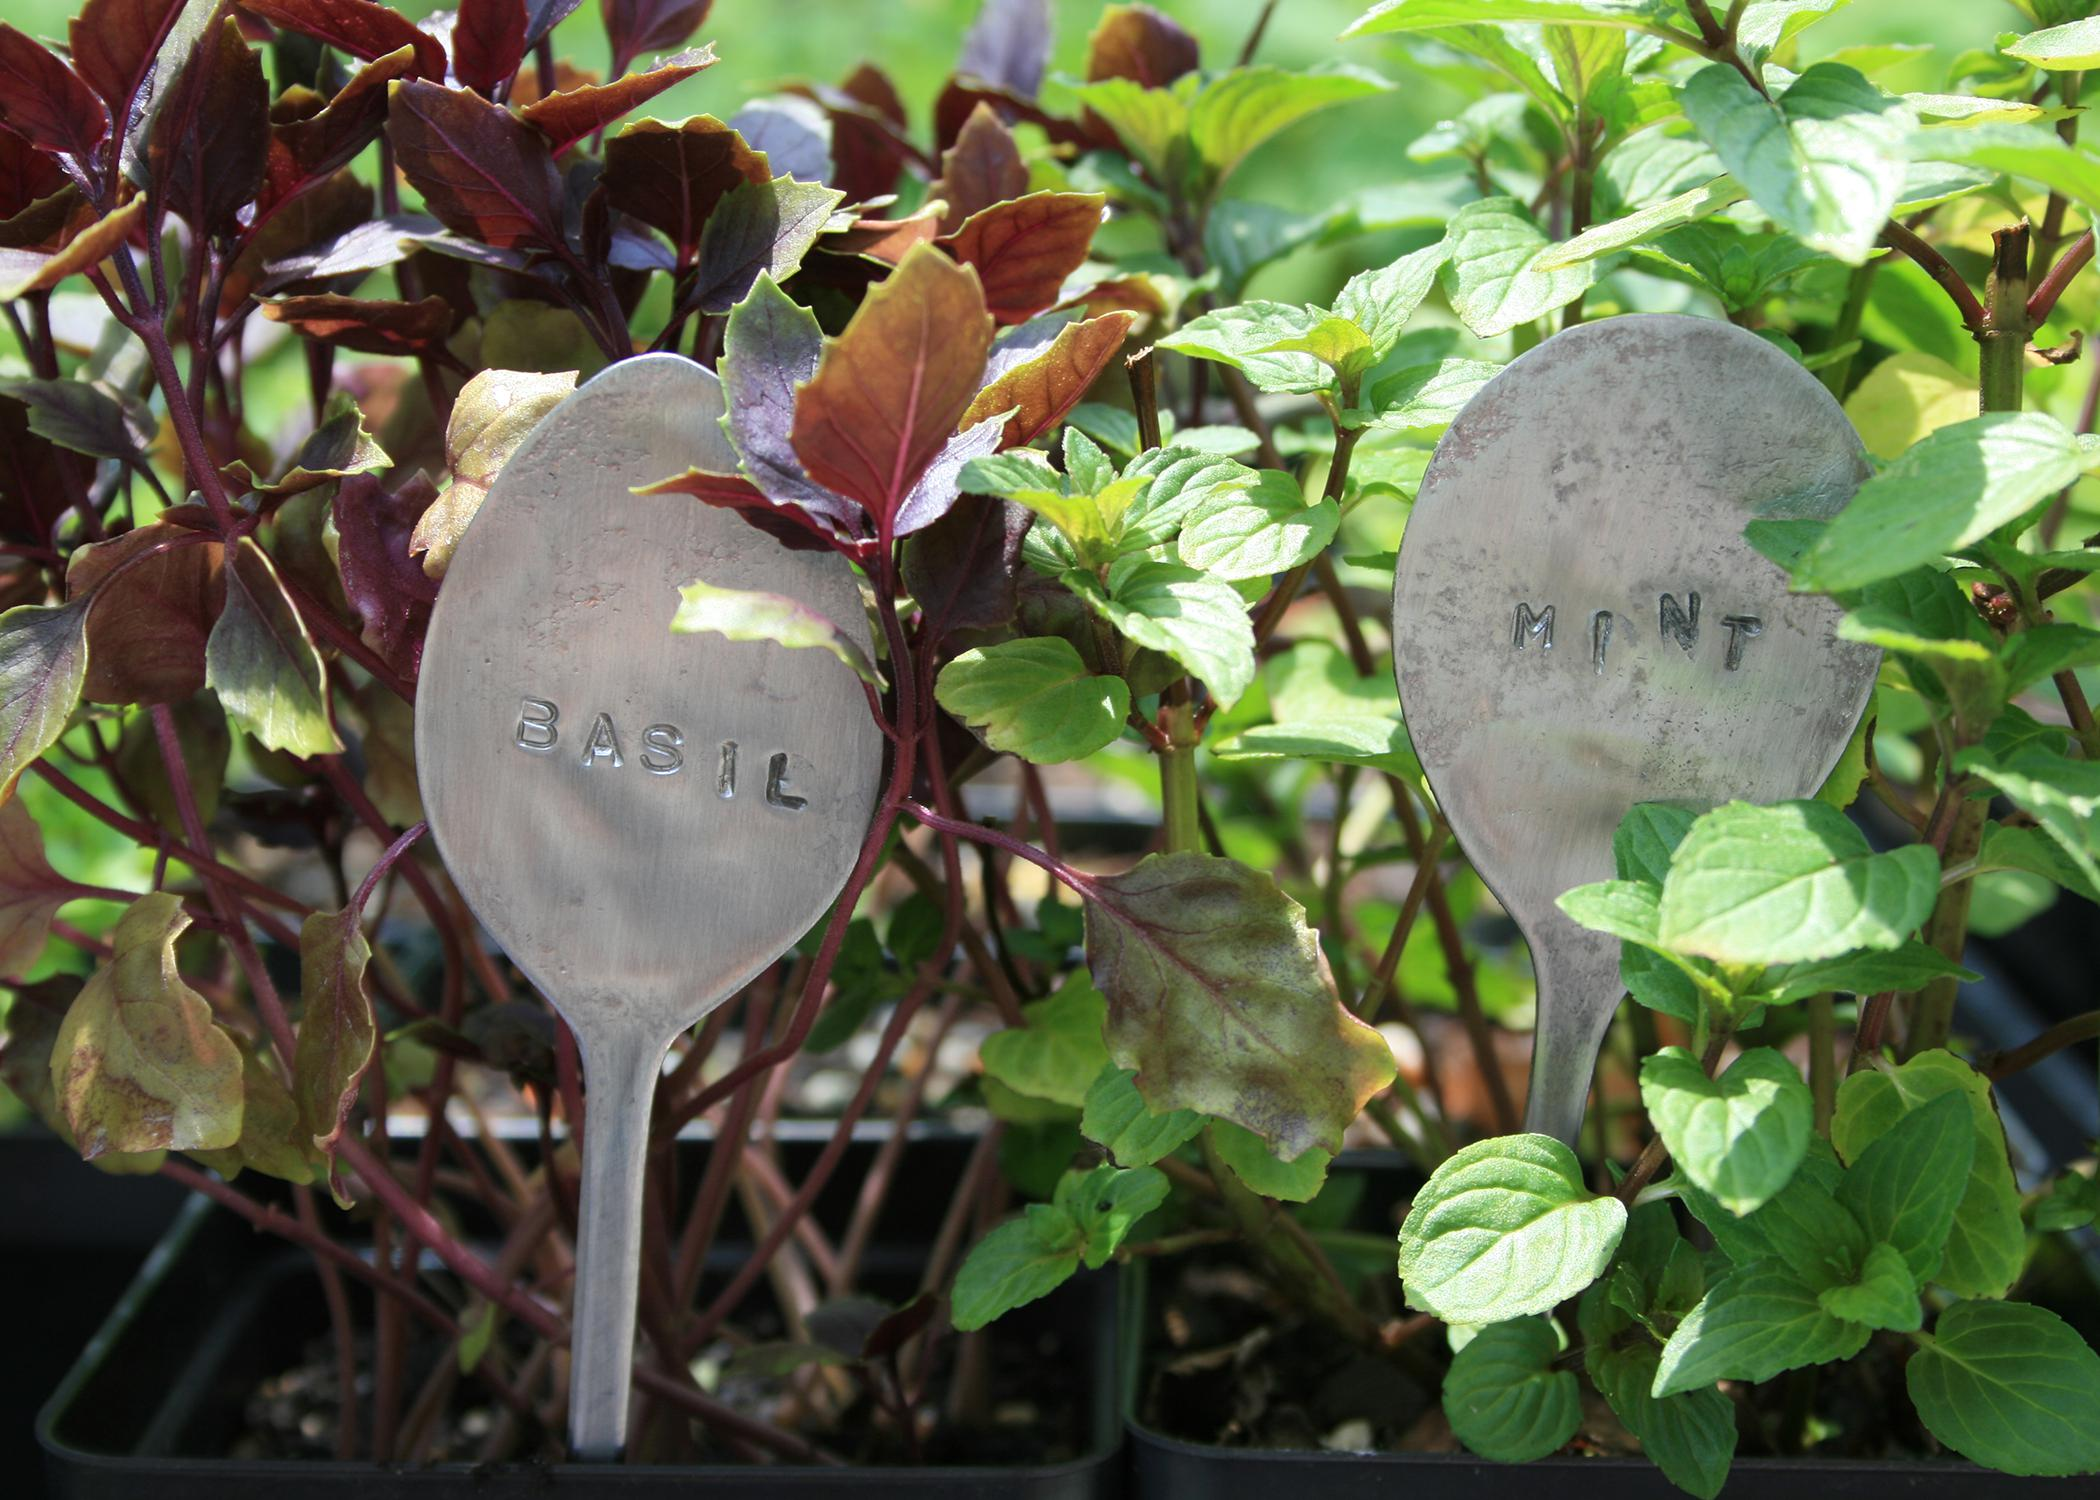 Flatten old spoons to use as plant markers, and use letter punches to stencil in the plant name. (Photo by MSU Extension Service/Gary Bachman)